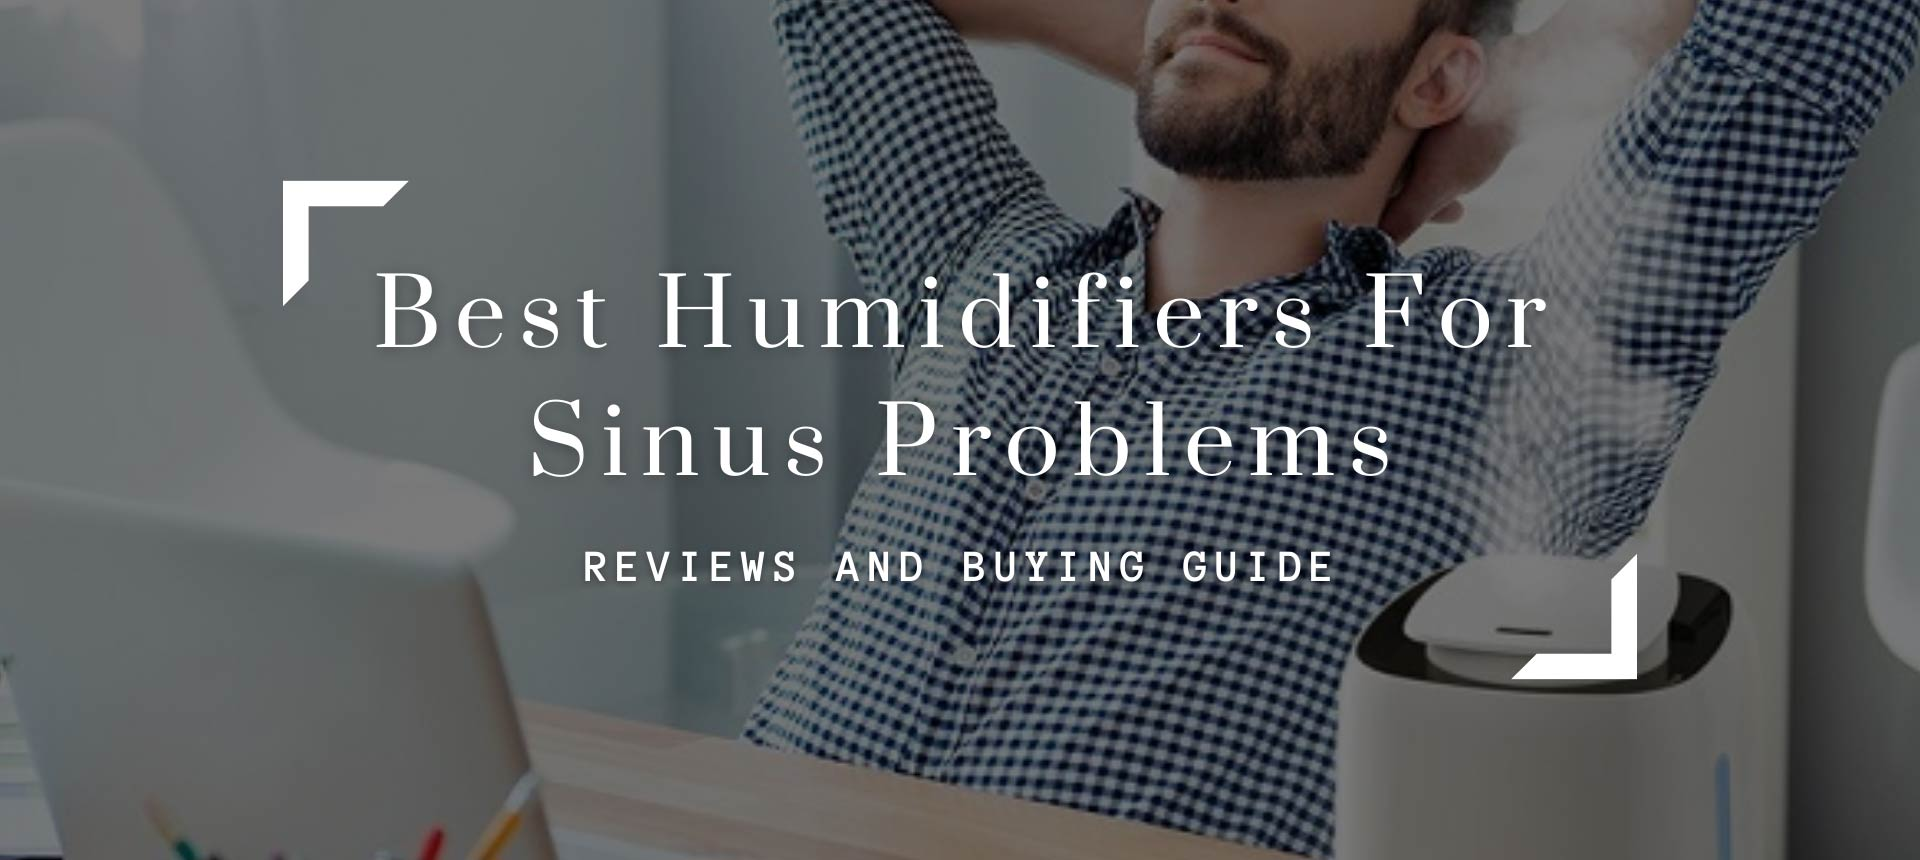 Humidifiers For Sinus Problems 2021